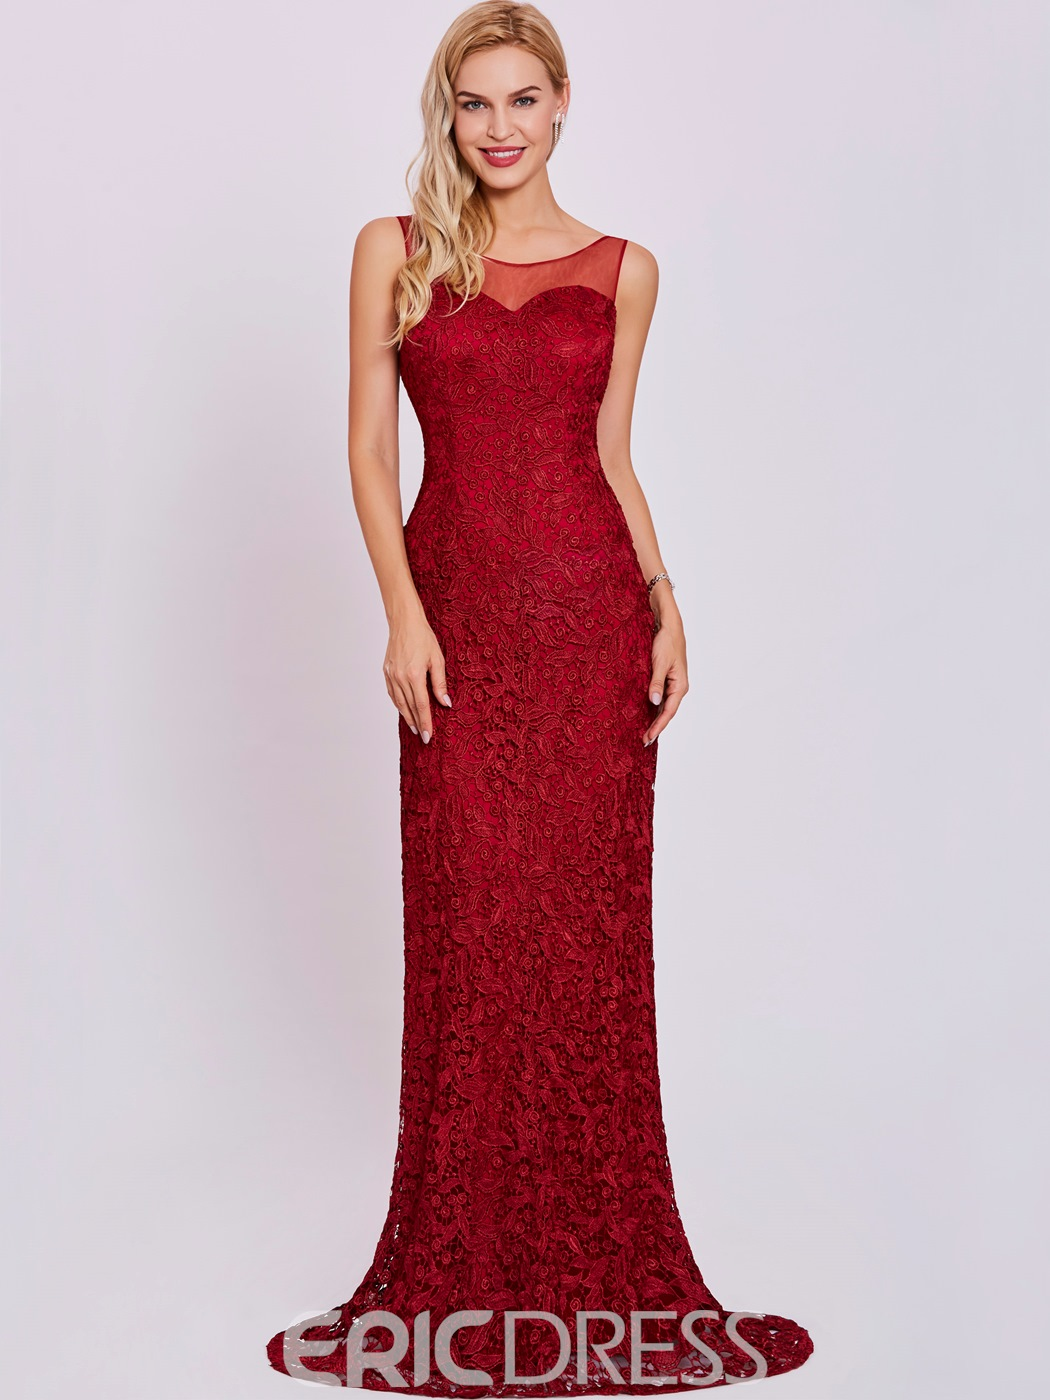 Ericdress Scoop Neck Lace Appliques Mermaid Evening Dress